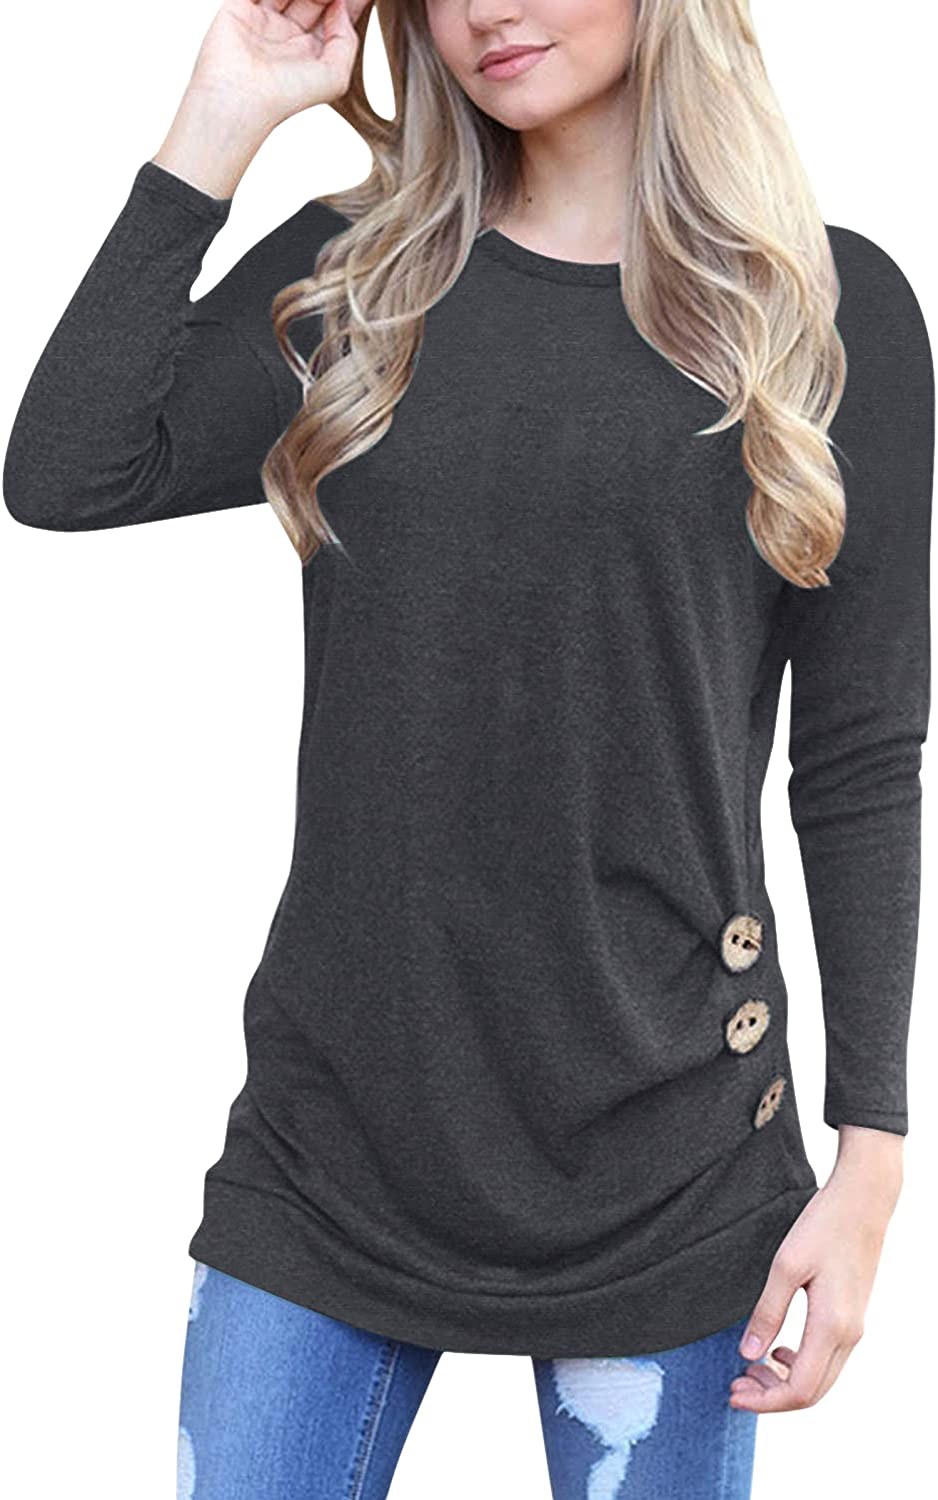 3da4cfc54c0 New thicker material, soft and comfortable to wear. Round Neck, Solid  Color, Button Trim on the Side, A must have women shirts.